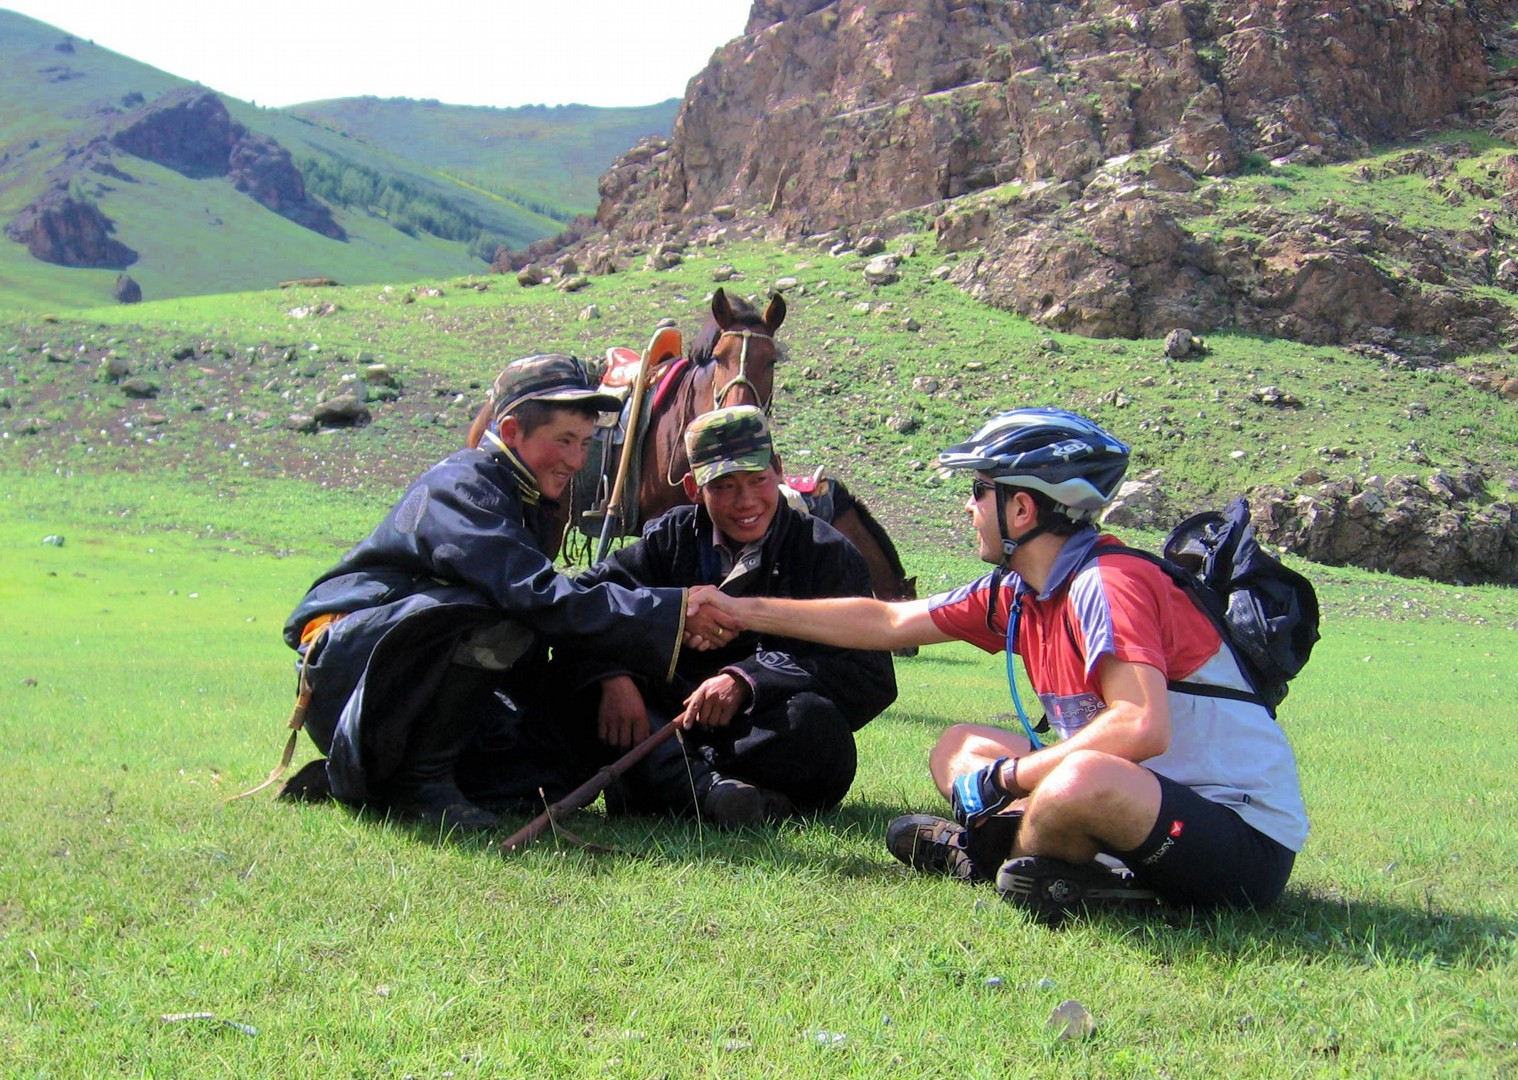 mongolia-bike-holiday.jpg - NEW! Mongolia - Route of the Nomads - Cycling Adventures